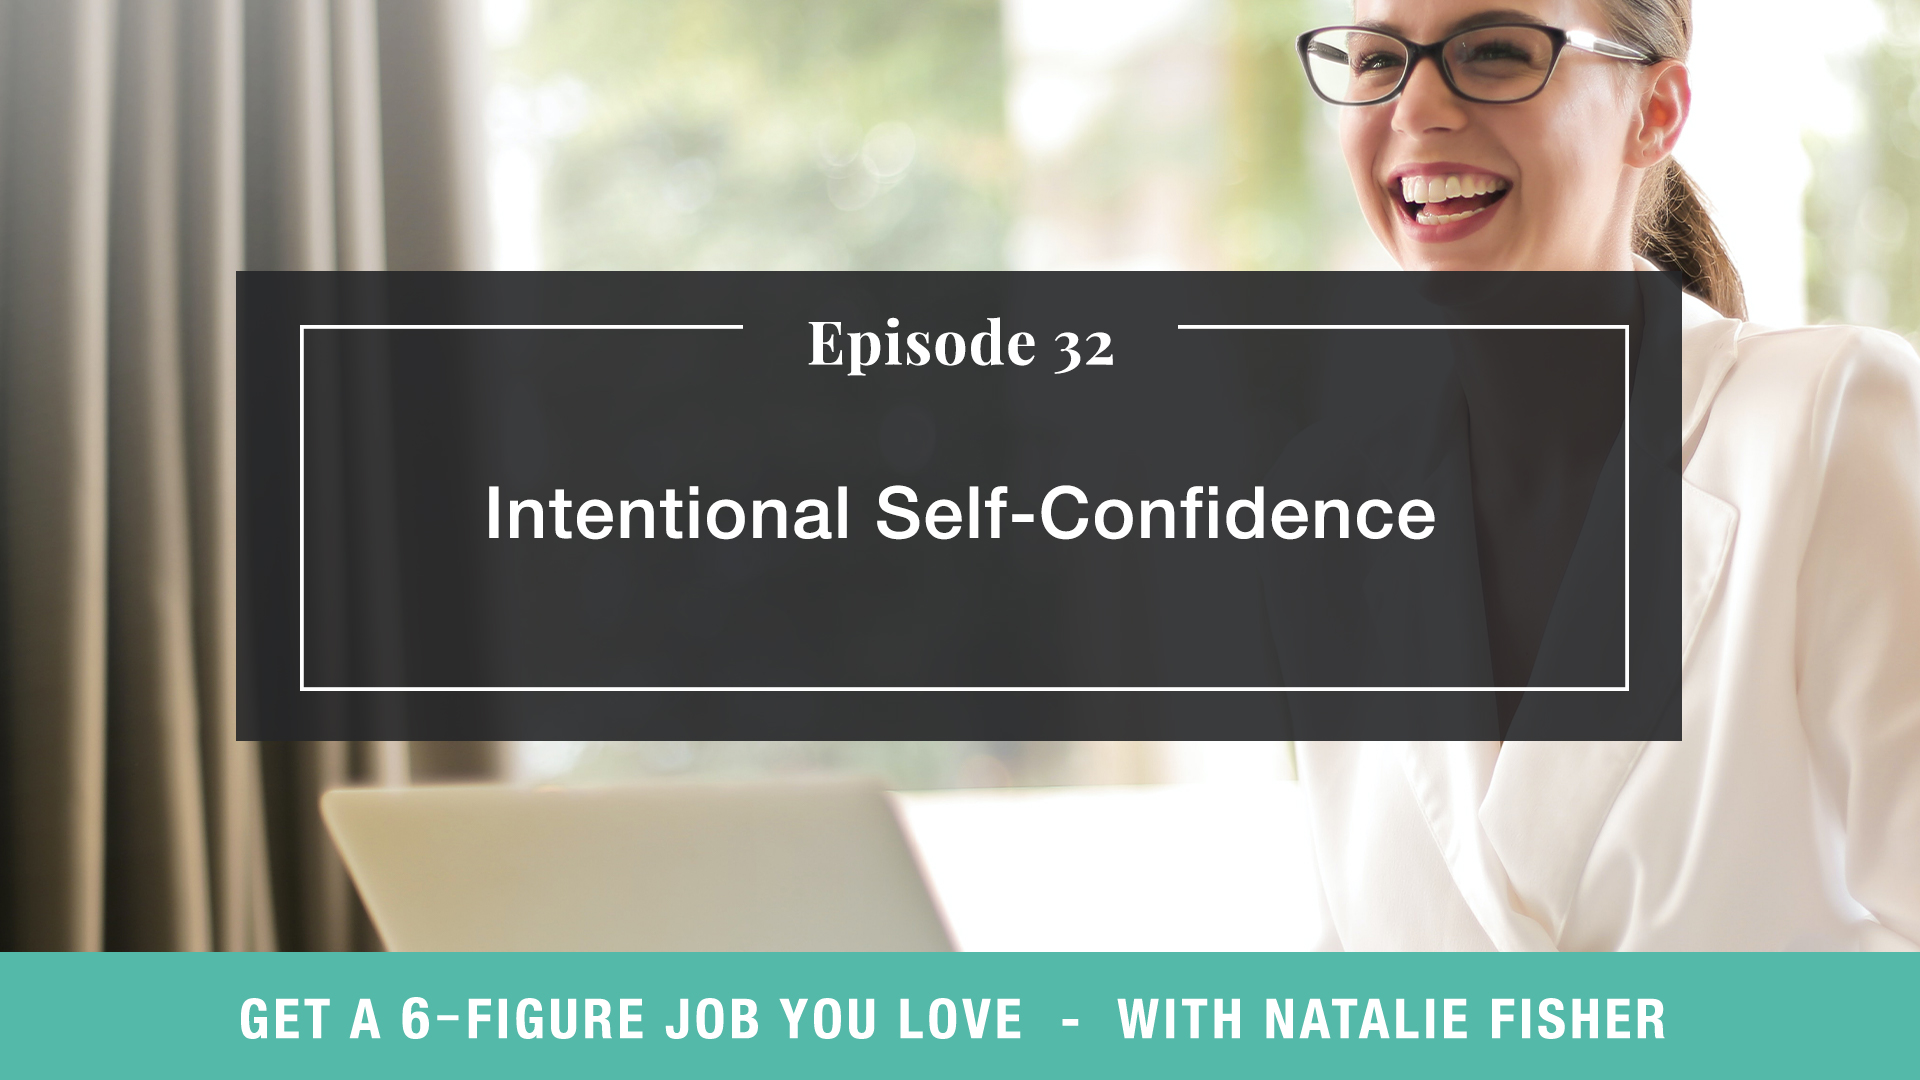 Intentional Self-Confidence